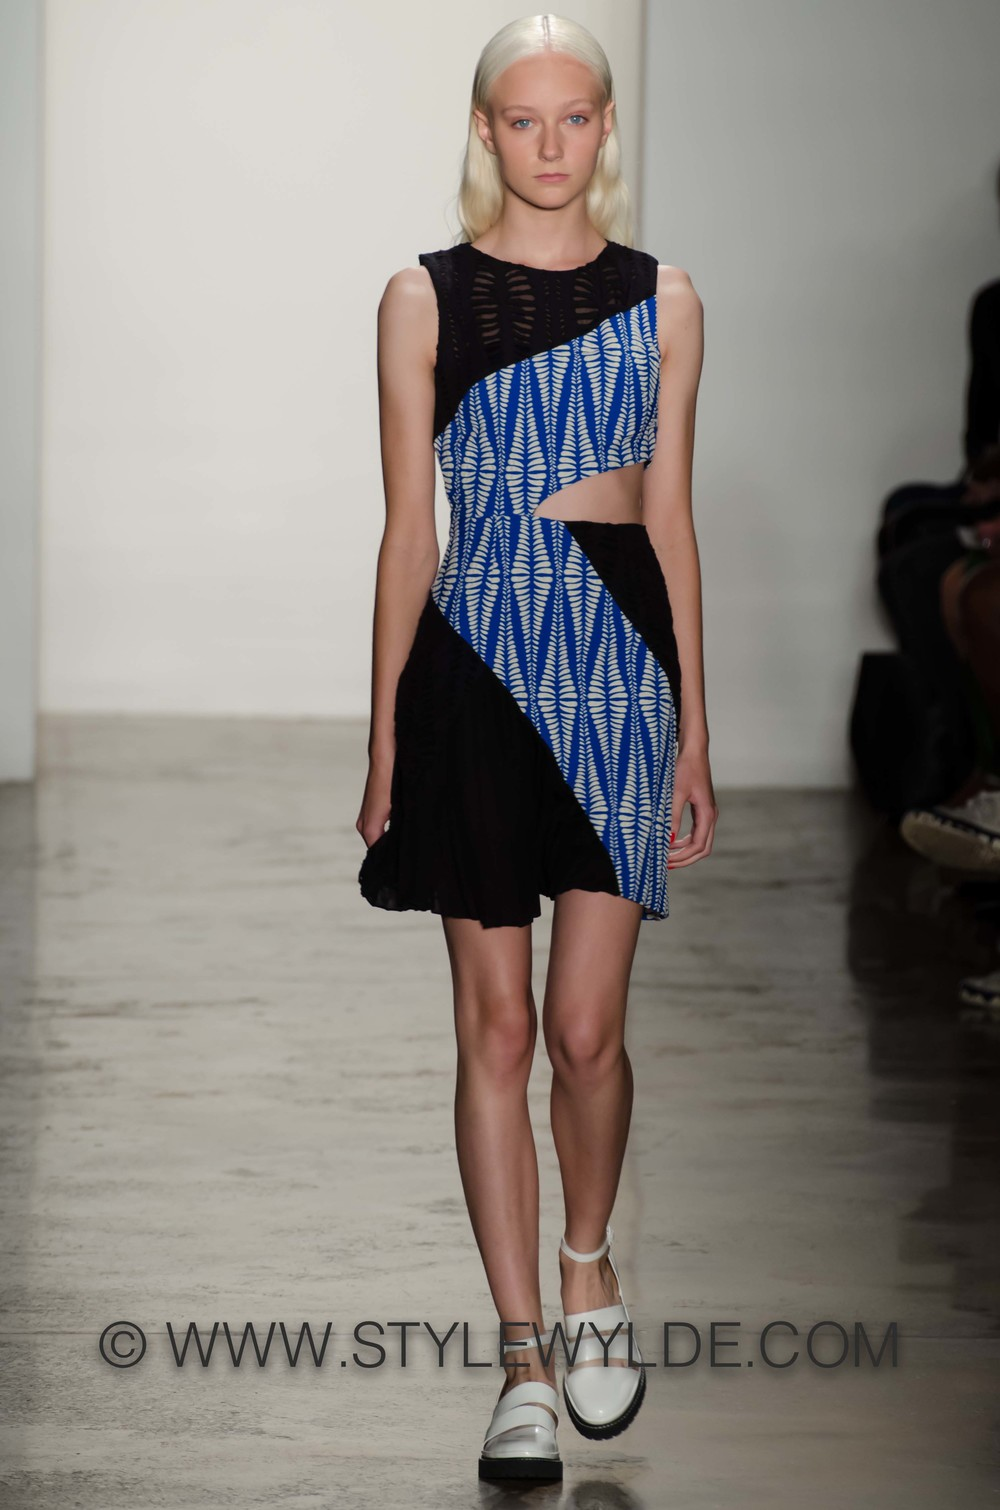 stylewylde_timo_weiland_gallery_ss2014-18.jpg